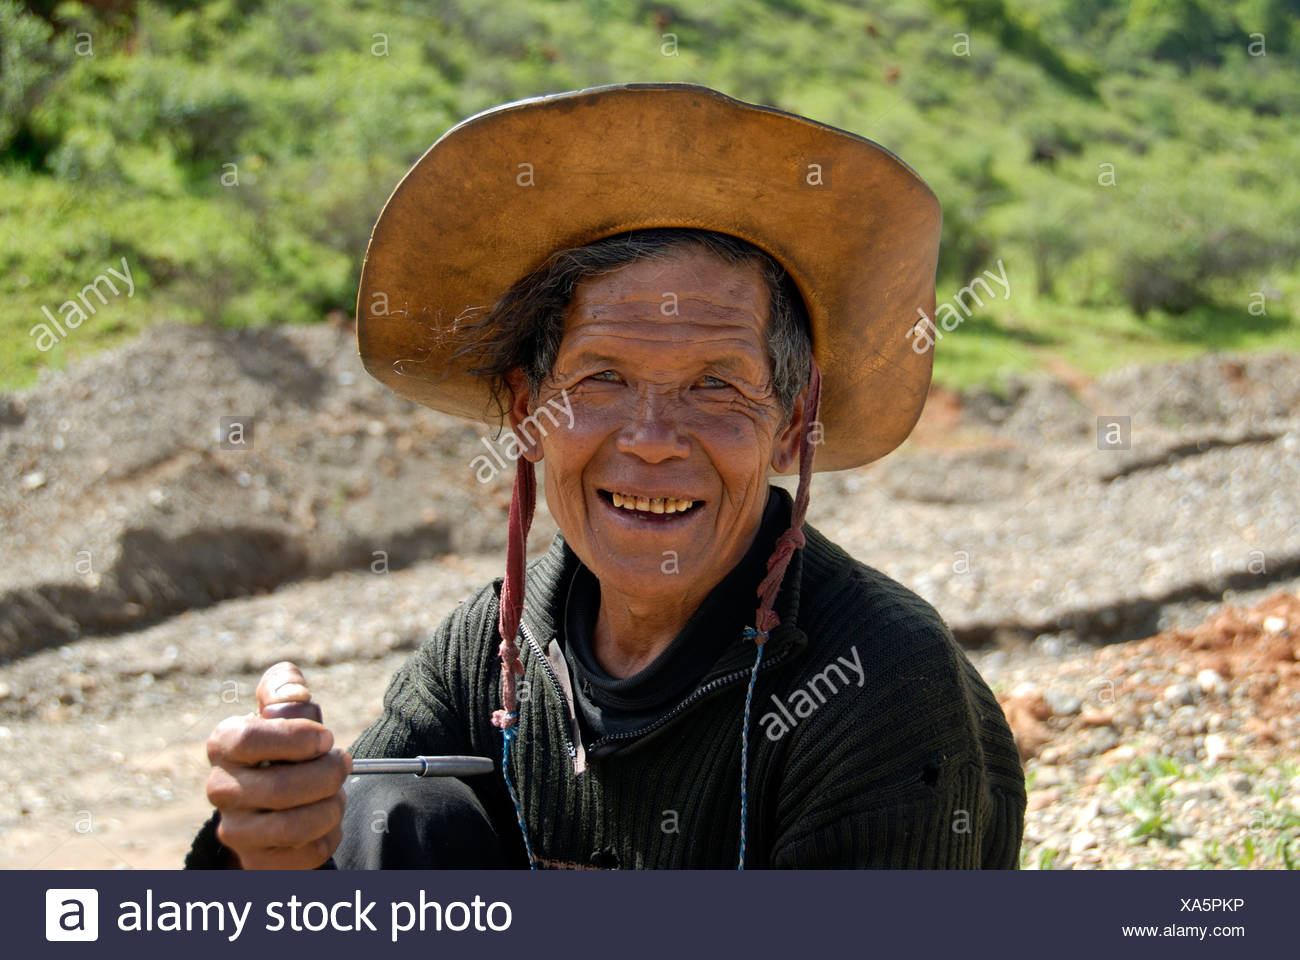 Portrait, ethnology, man of the Mosu ethnicity with hat, smiling and smoking a pipe, Yongning, Lugu Hu Lake area, Yunnan Provin - Stock Image